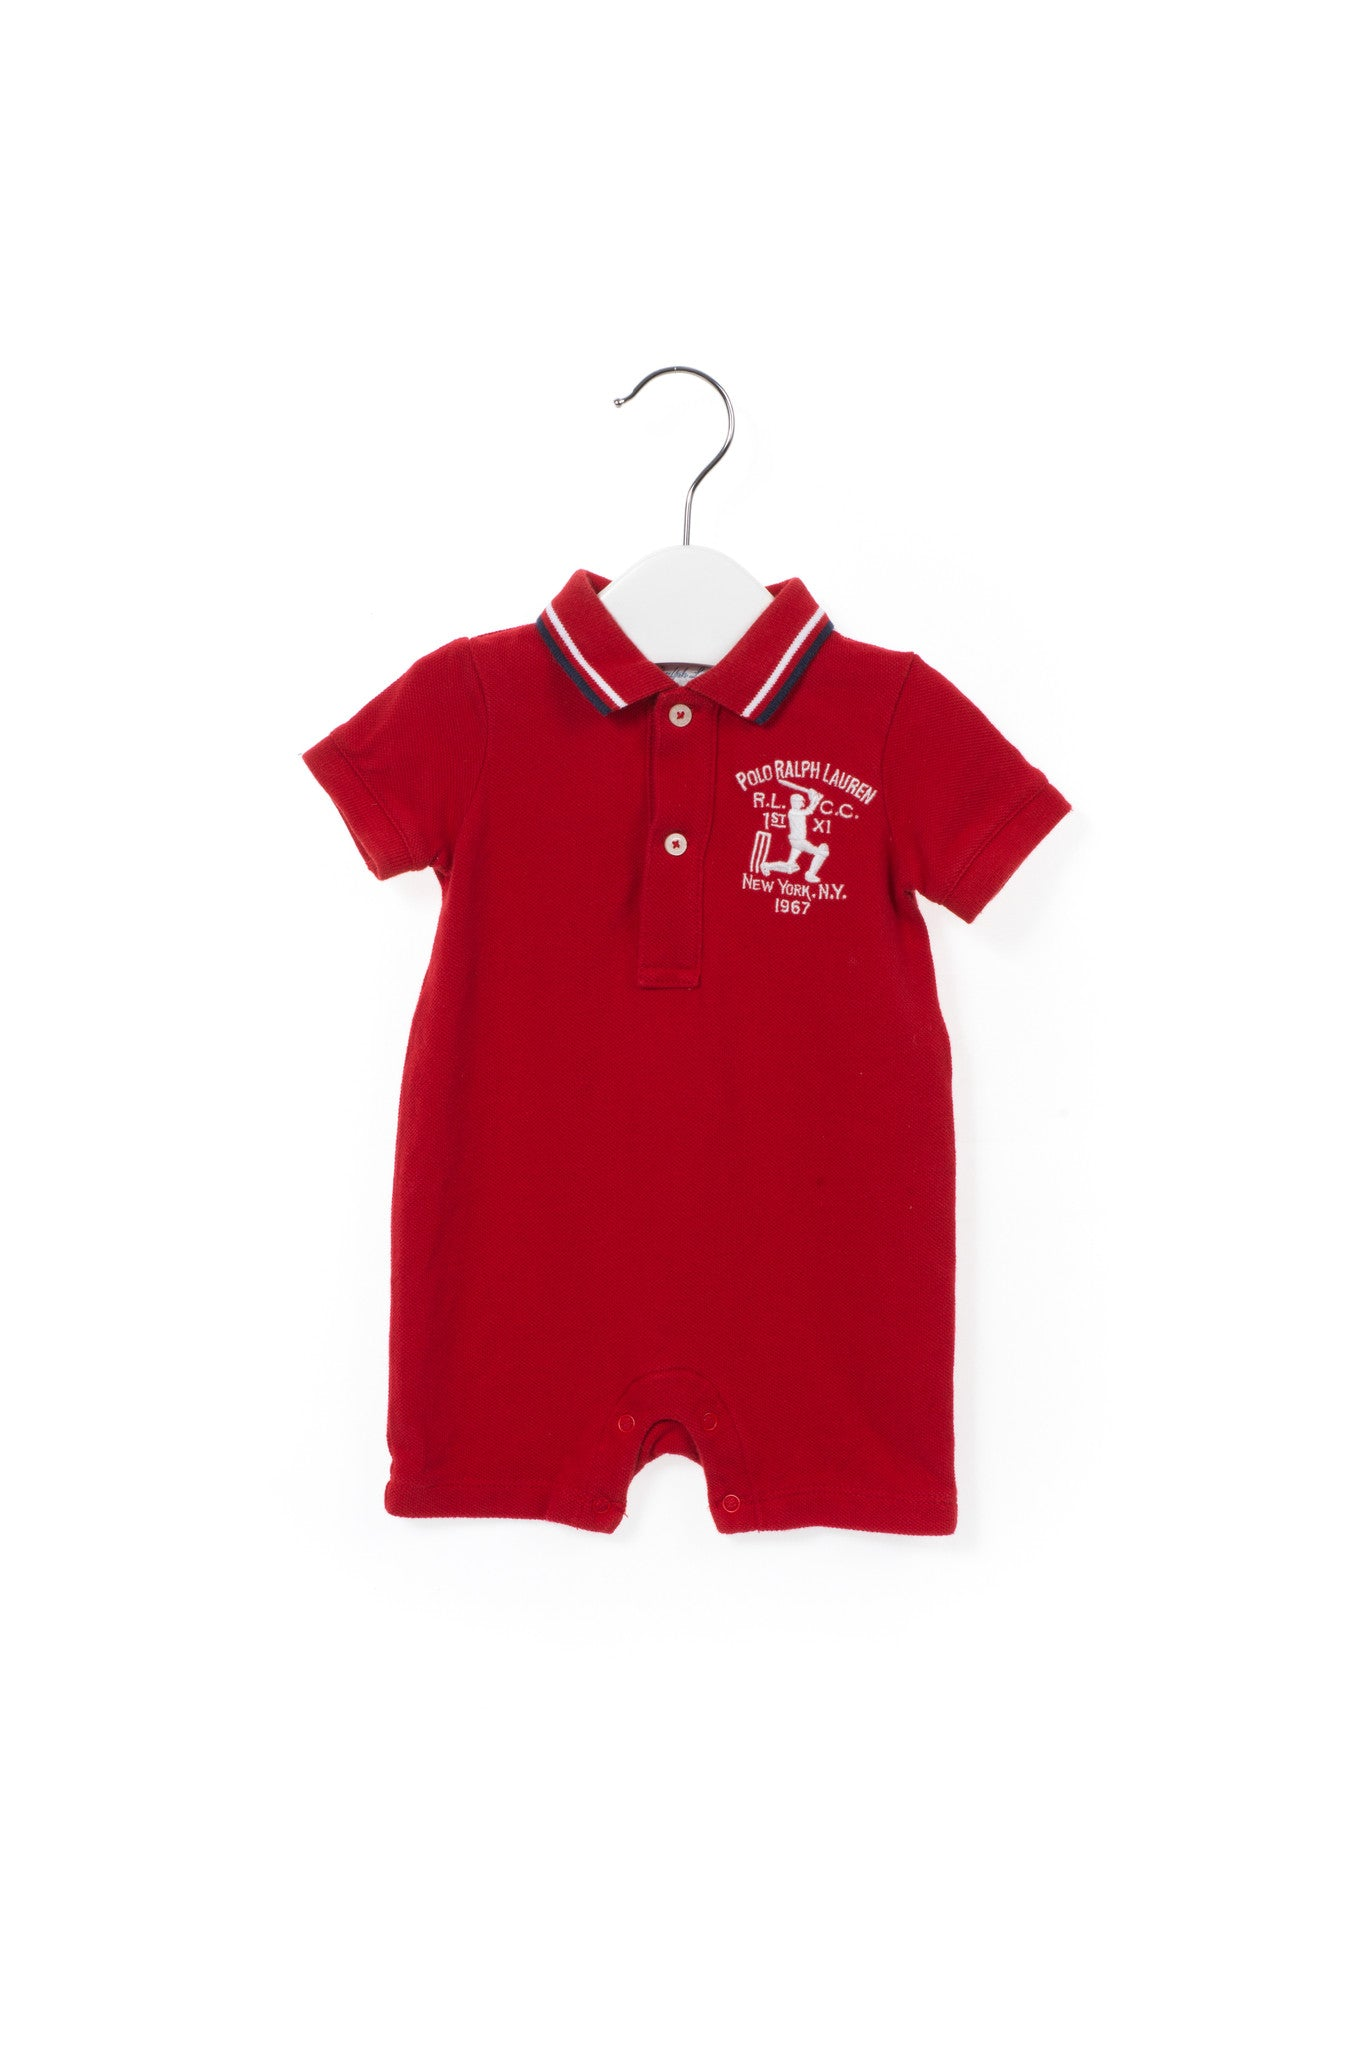 Romper 0-3M, Polo Ralph Lauren at Retykle - Online Baby & Kids Clothing Up to 90% Off